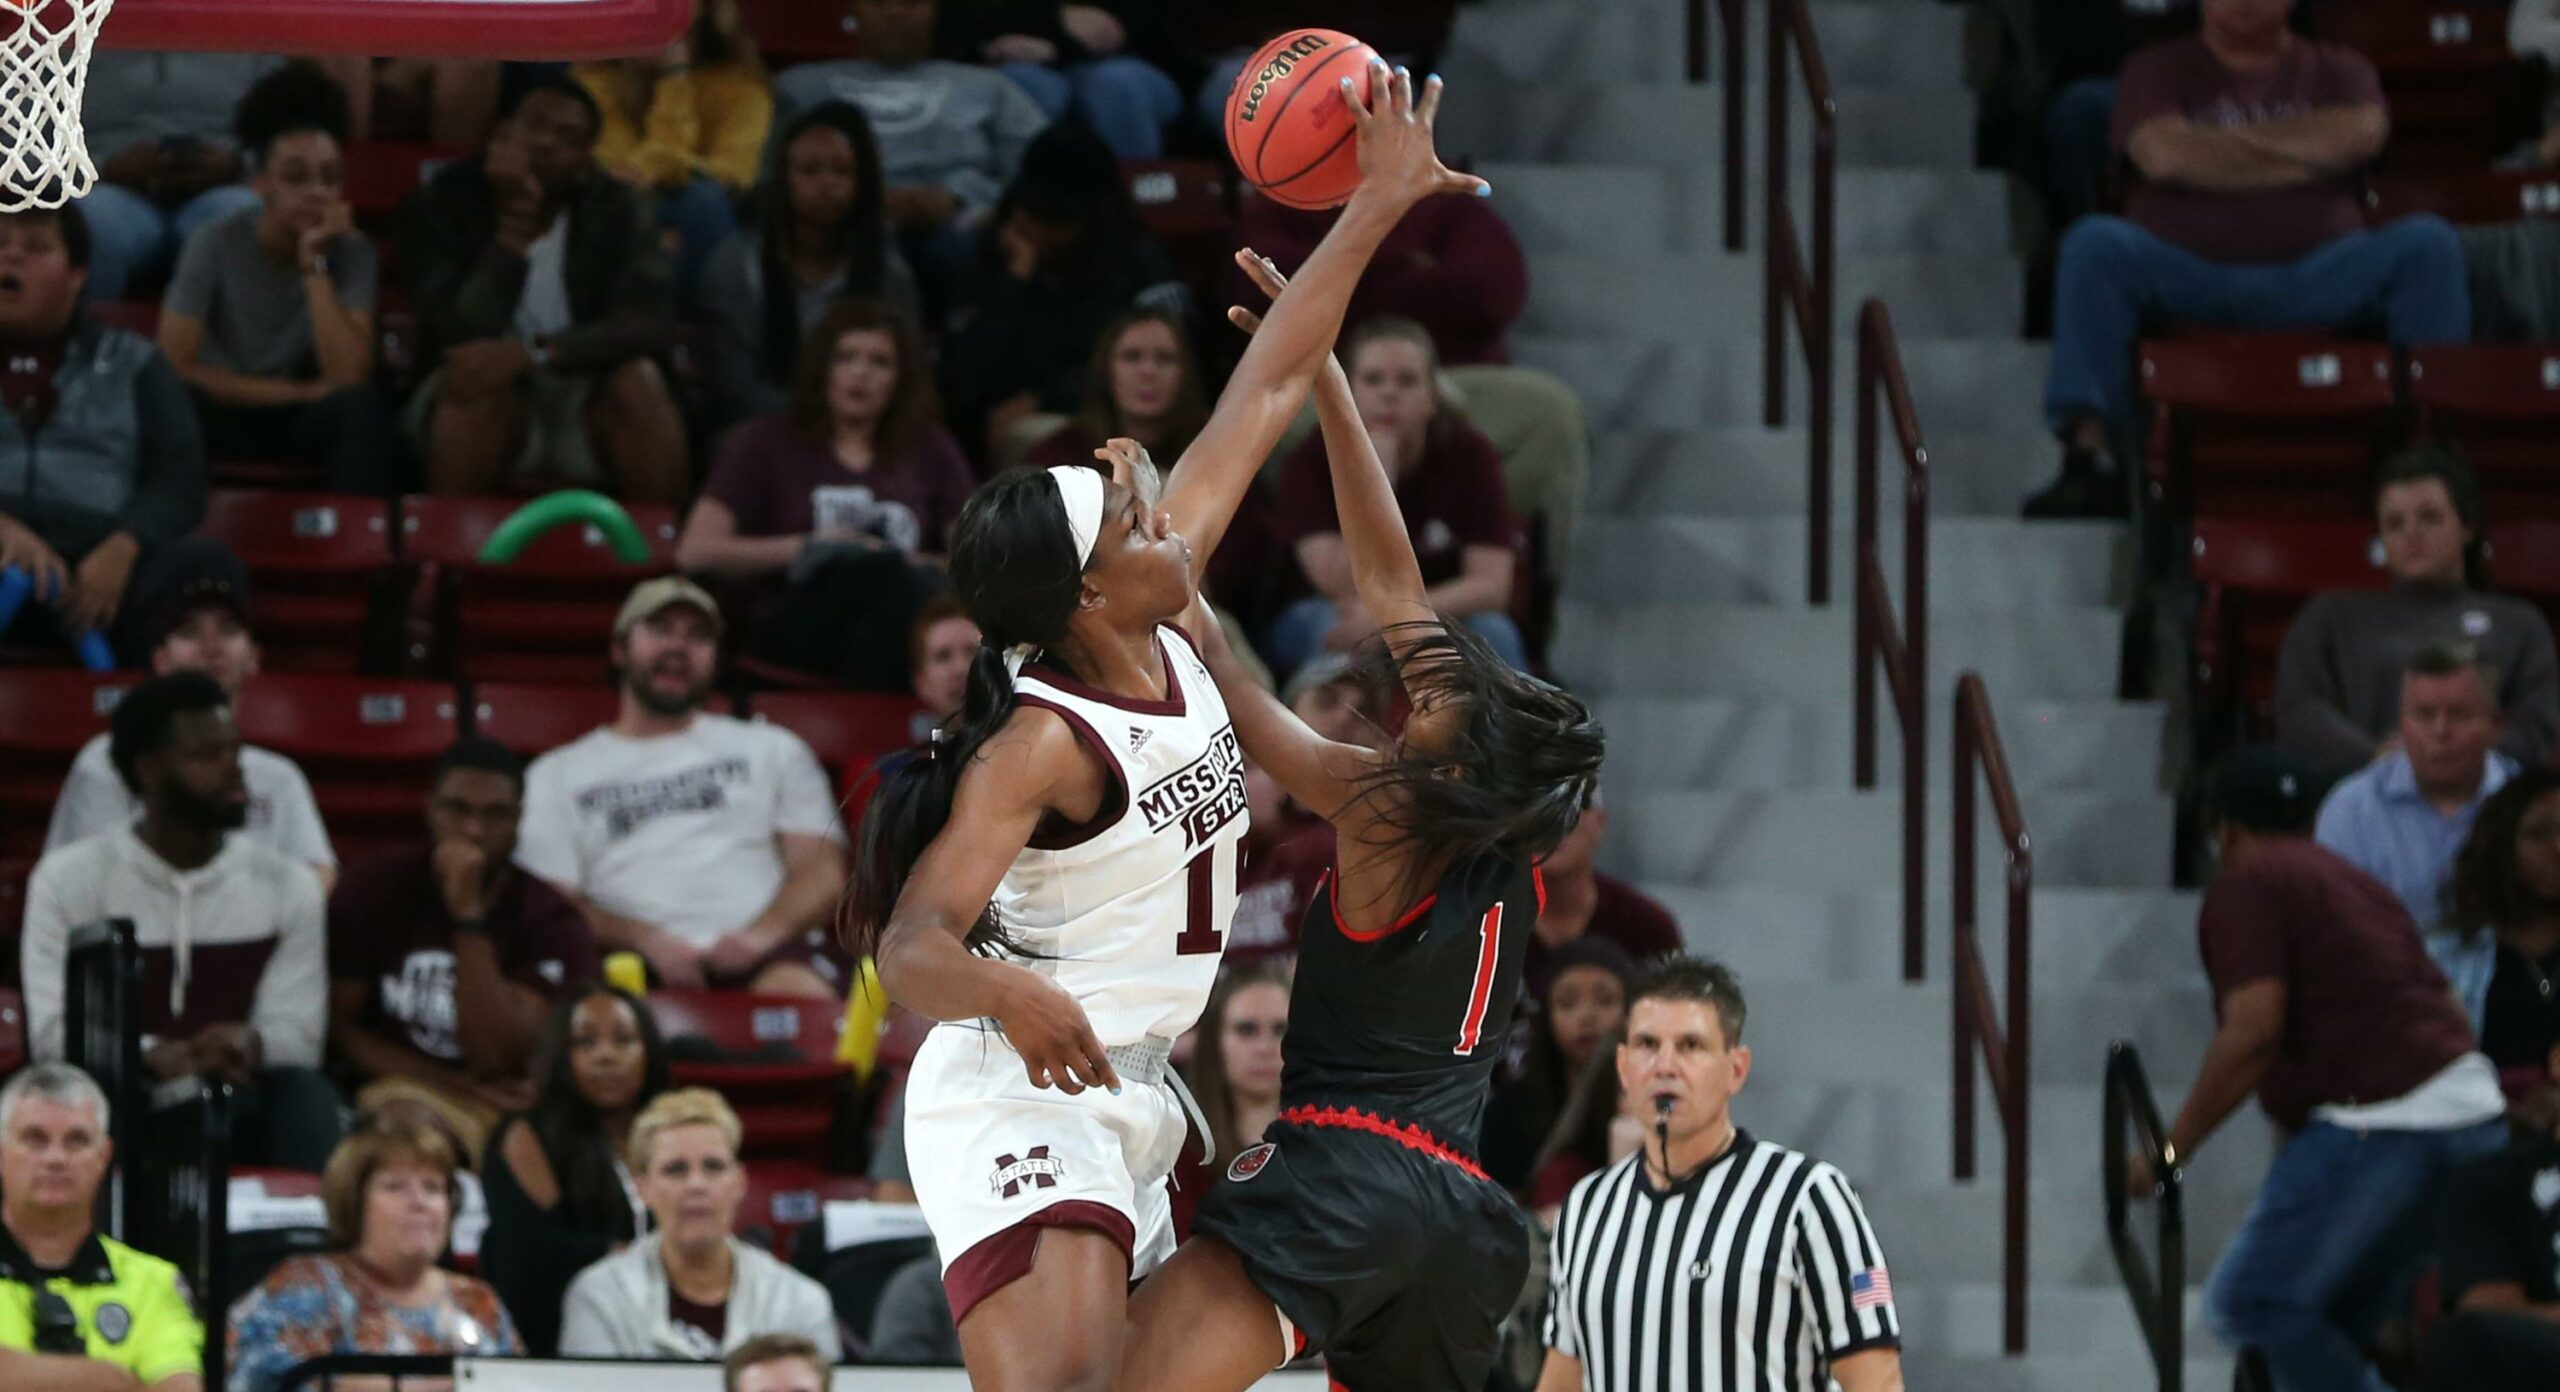 Led by Teaira McCowan, Mississippi State opens season with a victory over Southeast Missouri, 88-53